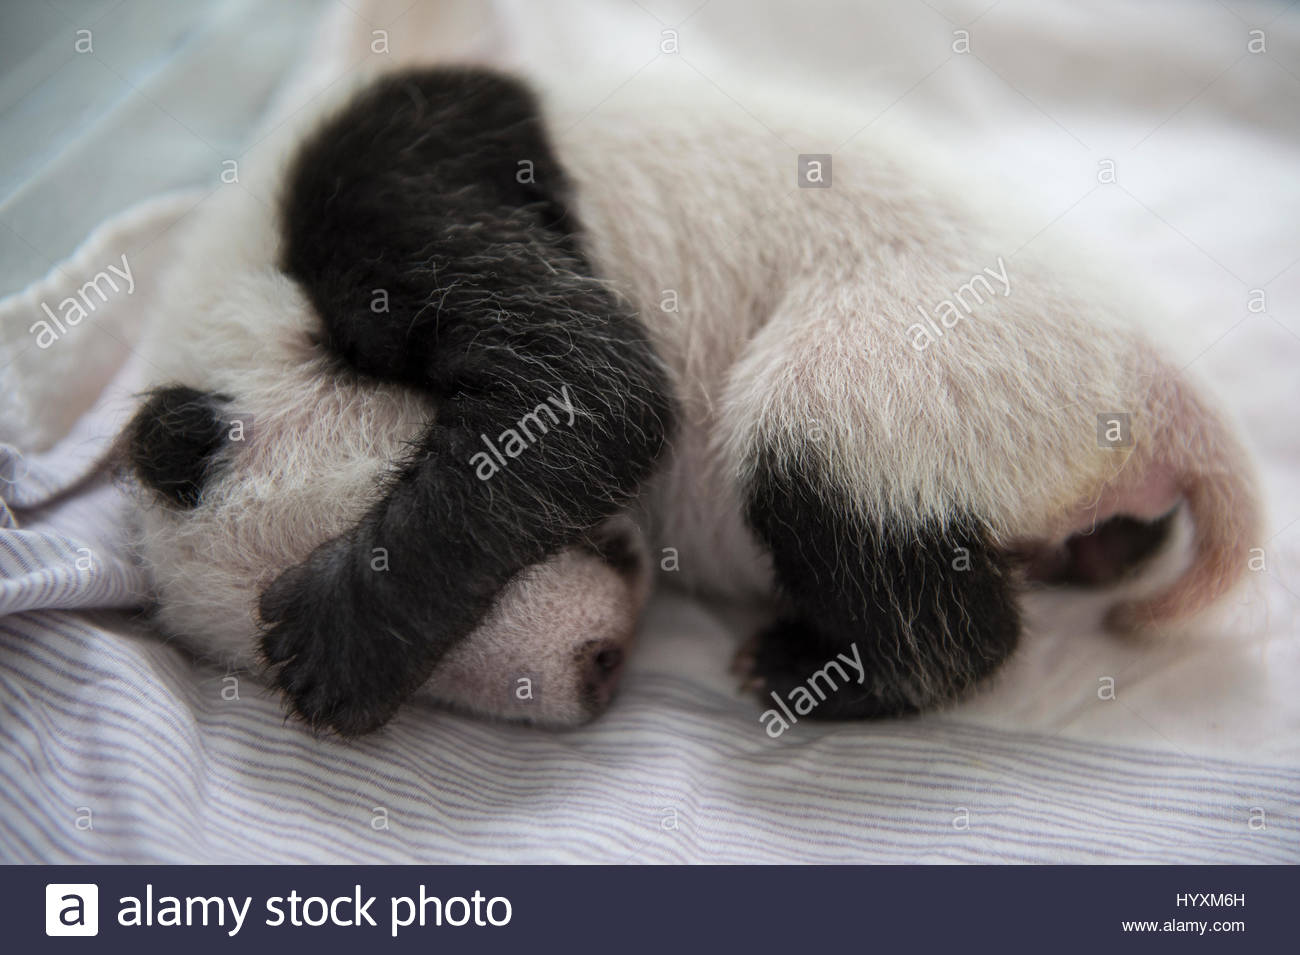 A giant panda cub that is only weeks old sleeps inside an incubator at the Bifengxia Giant Panda Breeding and Research - Stock Image